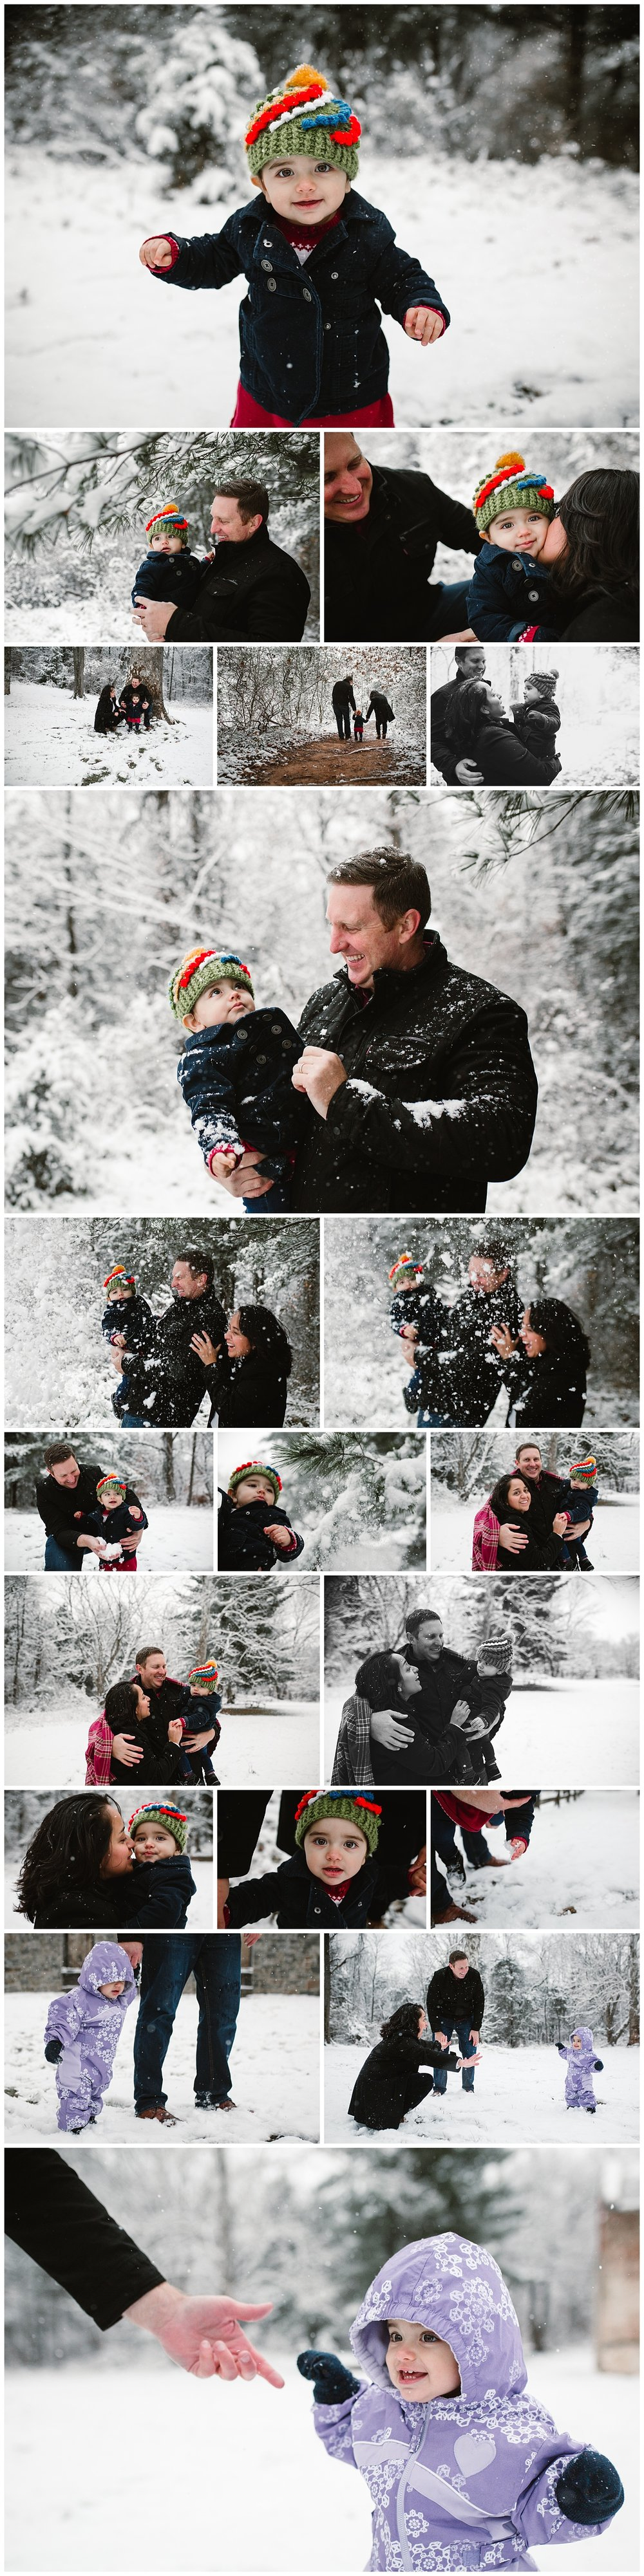 Leesburg Virginia Snowy Winter family photography